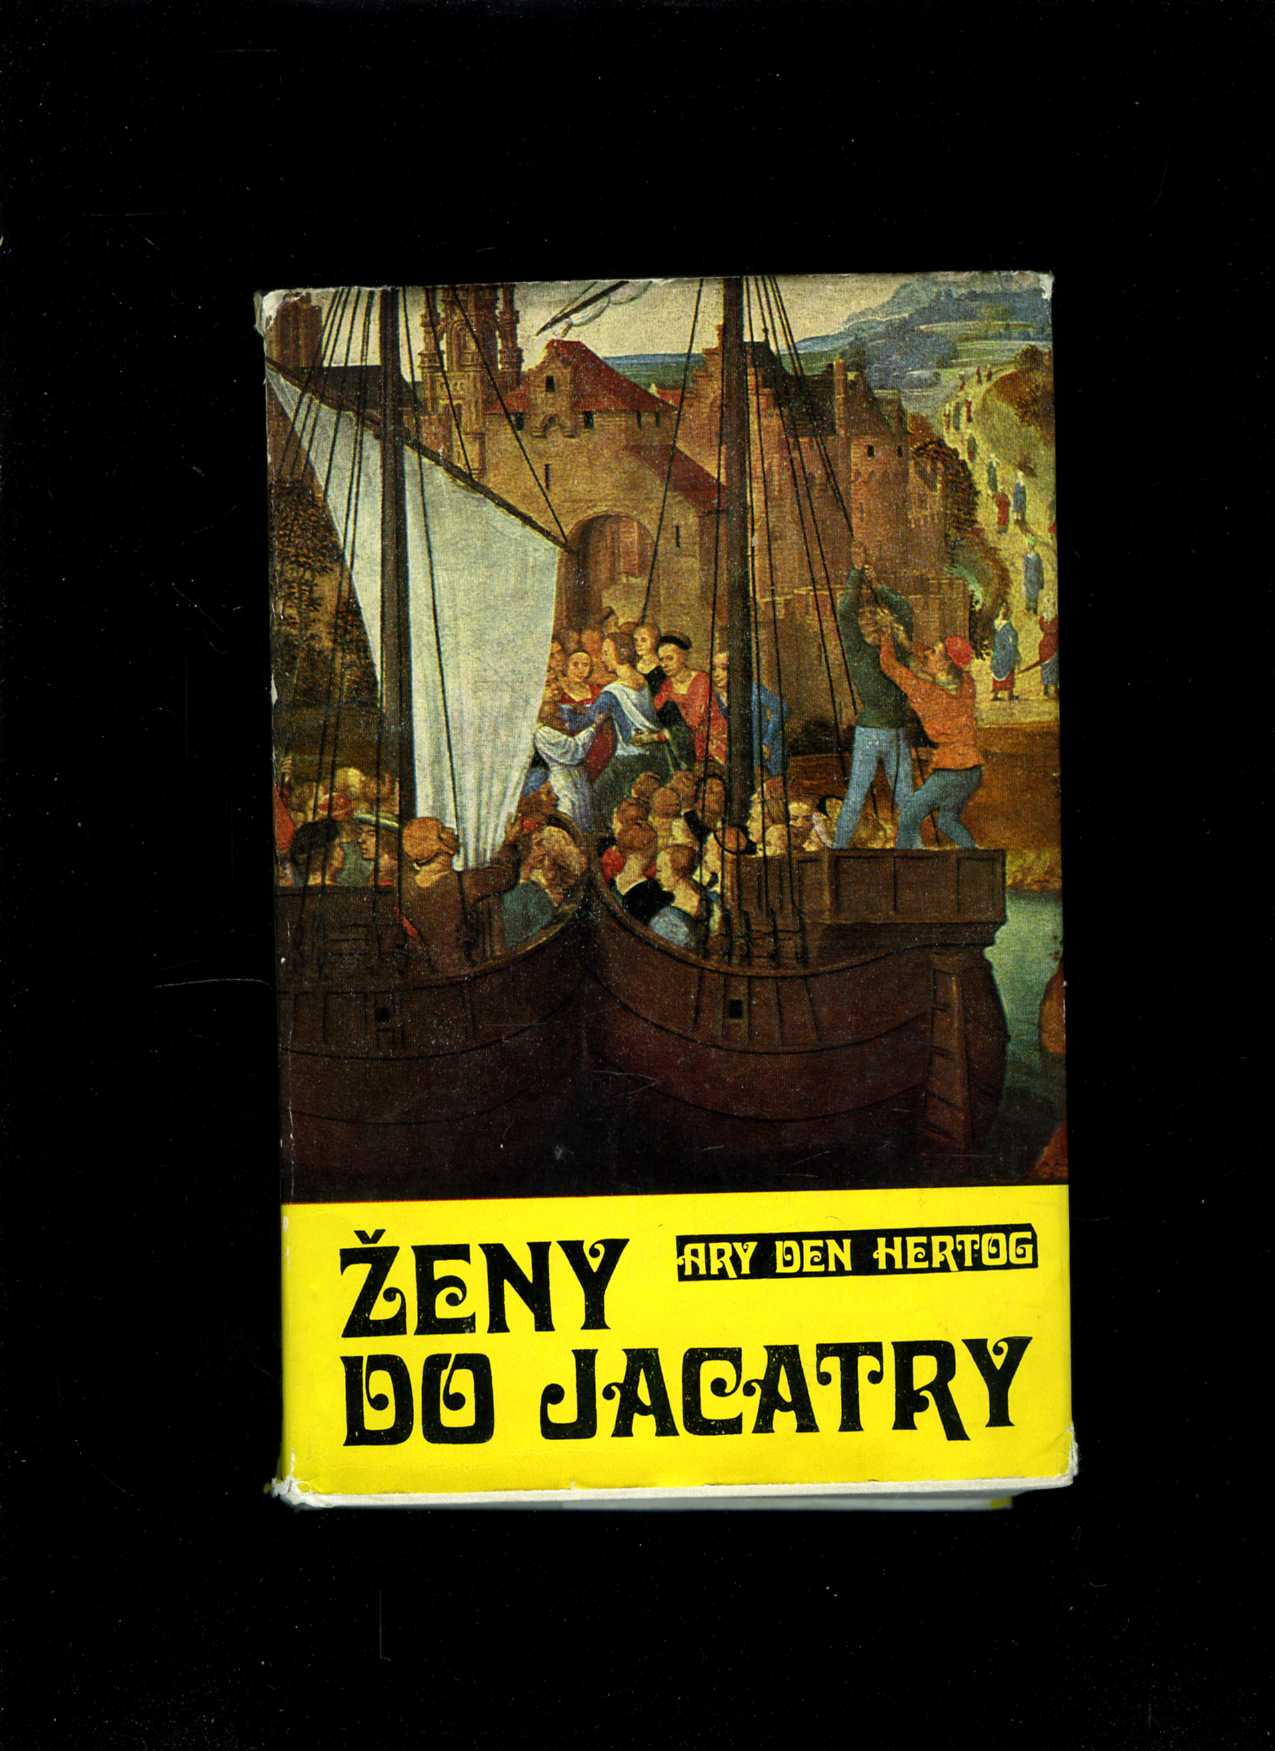 Ženy do Jacarty (Ary den Hertog)